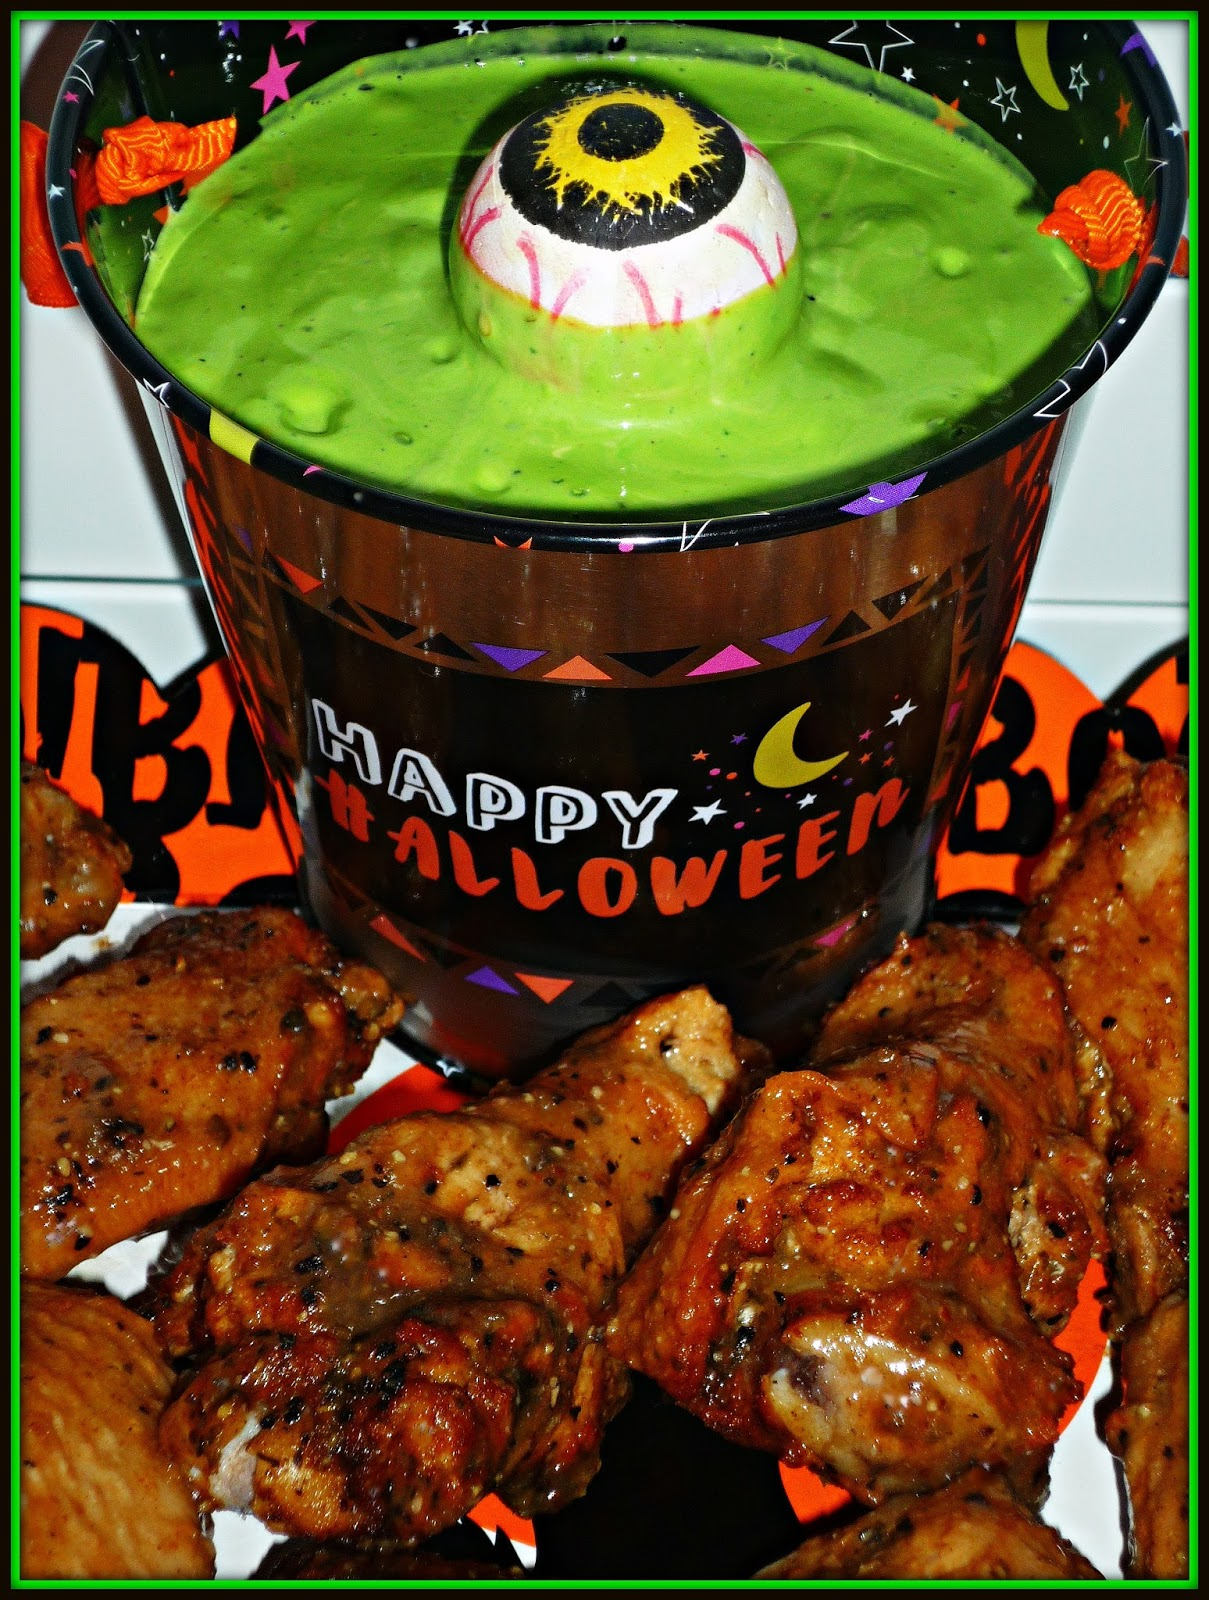 Of Baked Tyson Any Tizers Tequila Lime Wings To Your Halloween Snack Display Their Spicy Tangy Flavor Also Pairs Perfectly With The Dipping Sauce